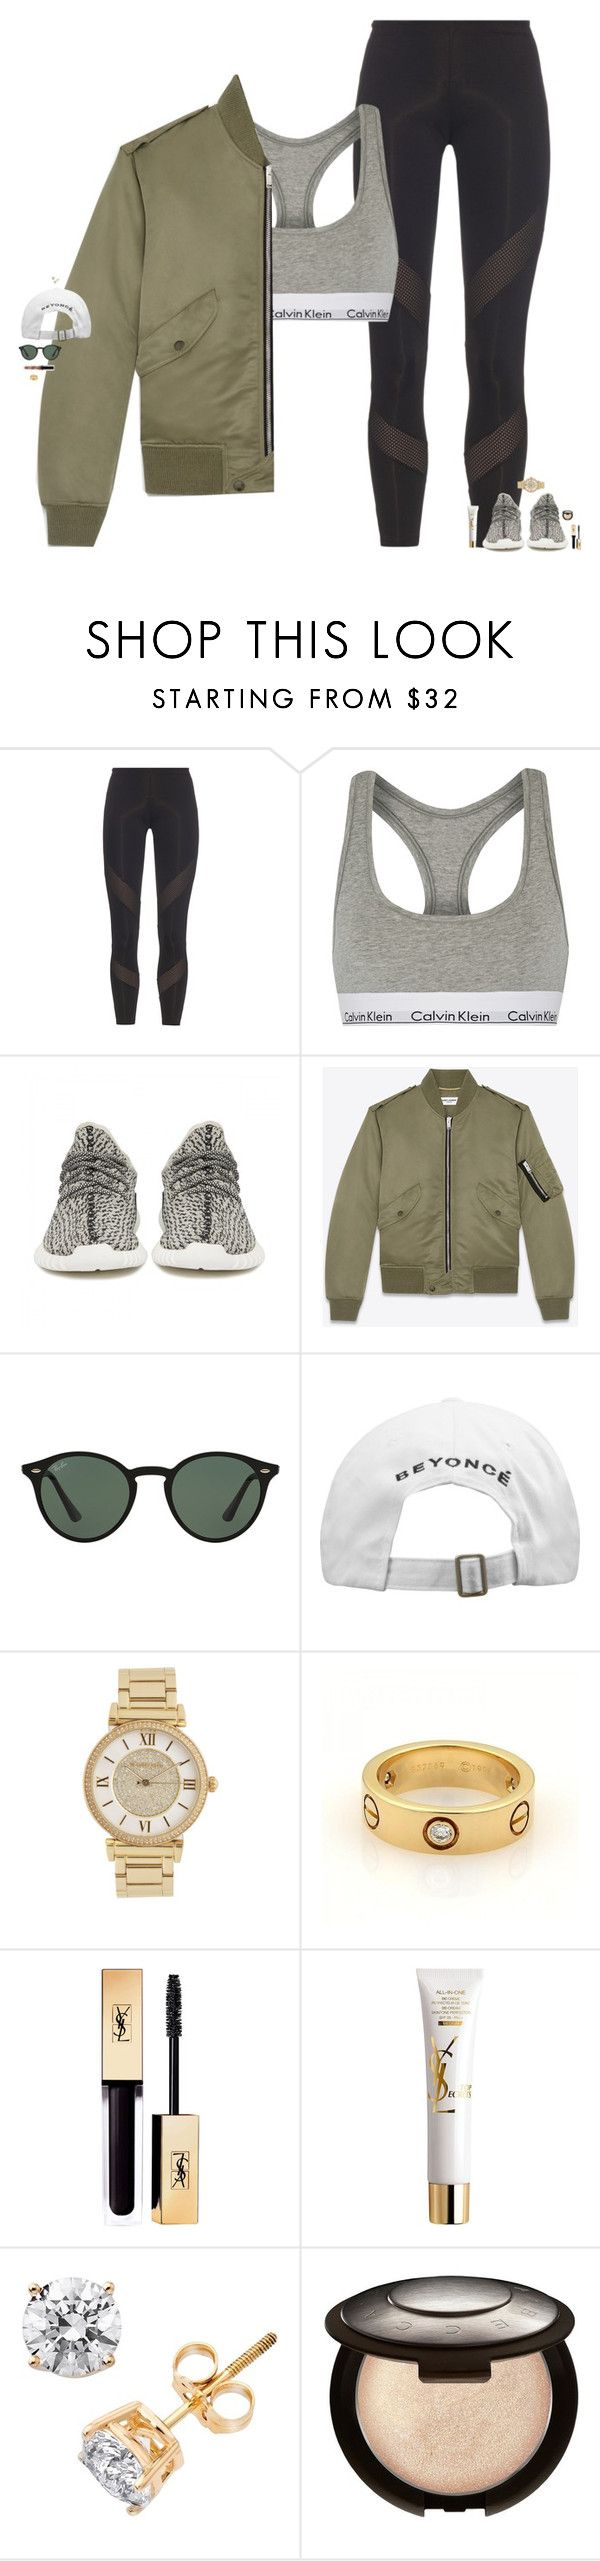 """thanks for 2k babes <3"" by maggie-prep ❤ liked on Polyvore featuring adidas, Calvin Klein Underwear, adidas Originals, Yves Saint Laurent, Ray-Ban, Michael Kors, Cartier, Becca and maggiesbestsets"